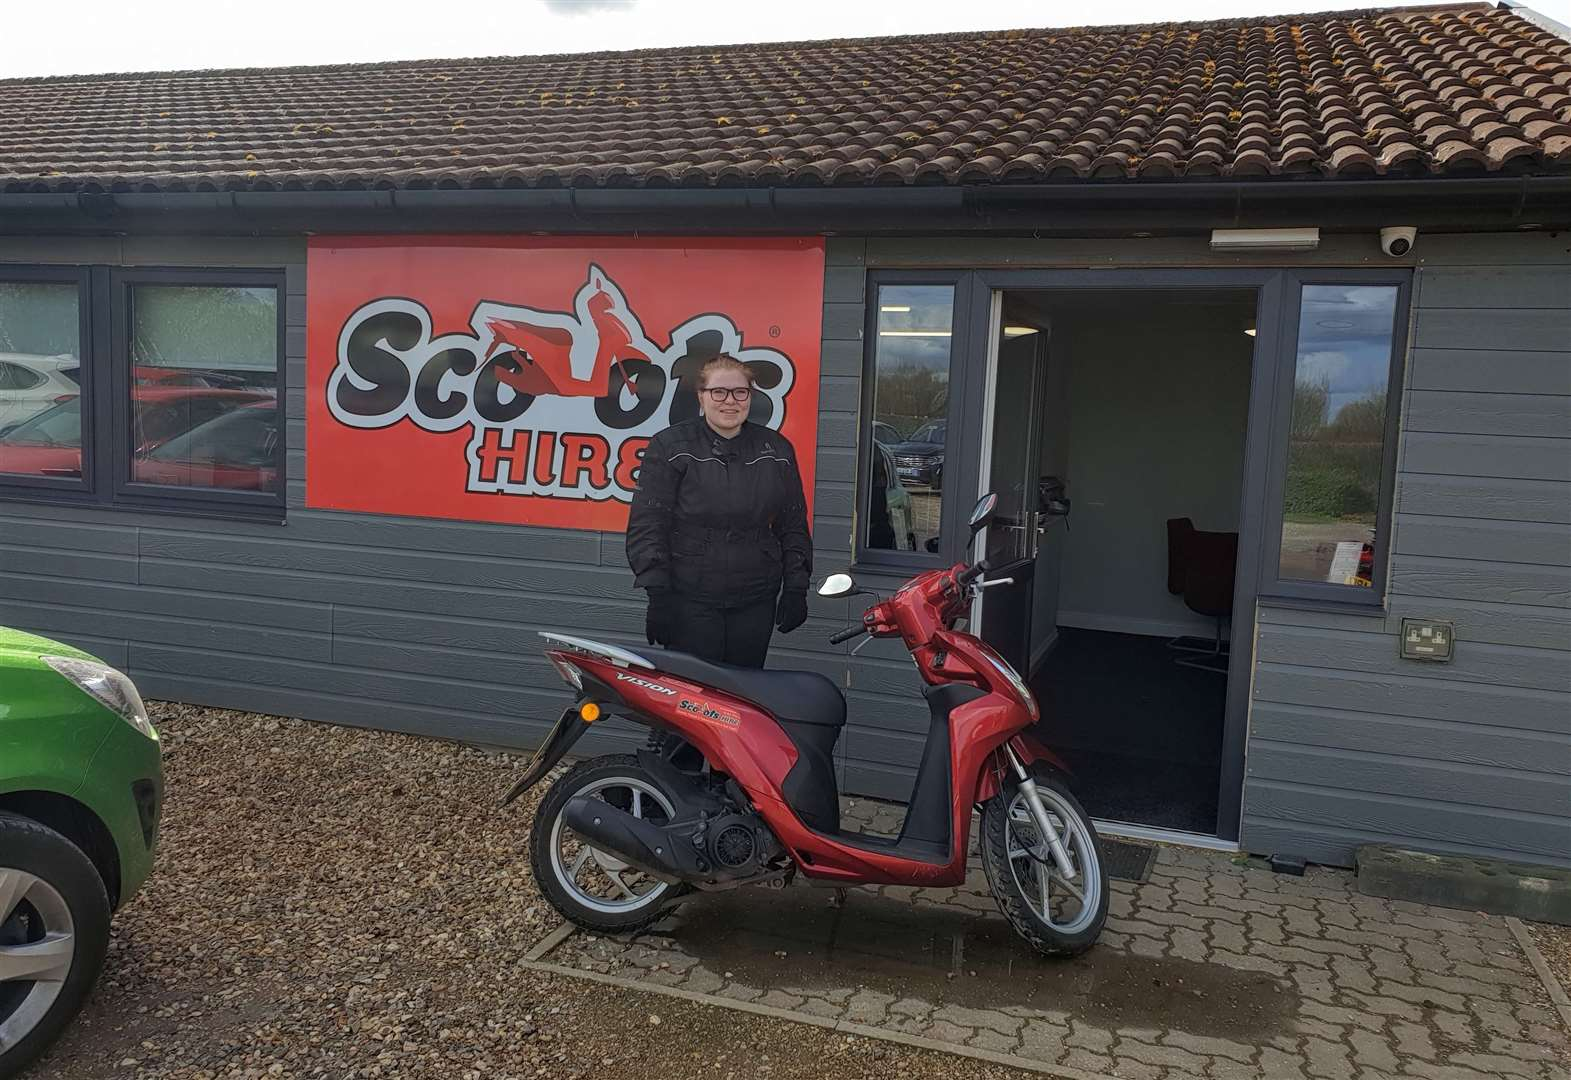 Scoots Hire costs as little or less to use than a bus fare might